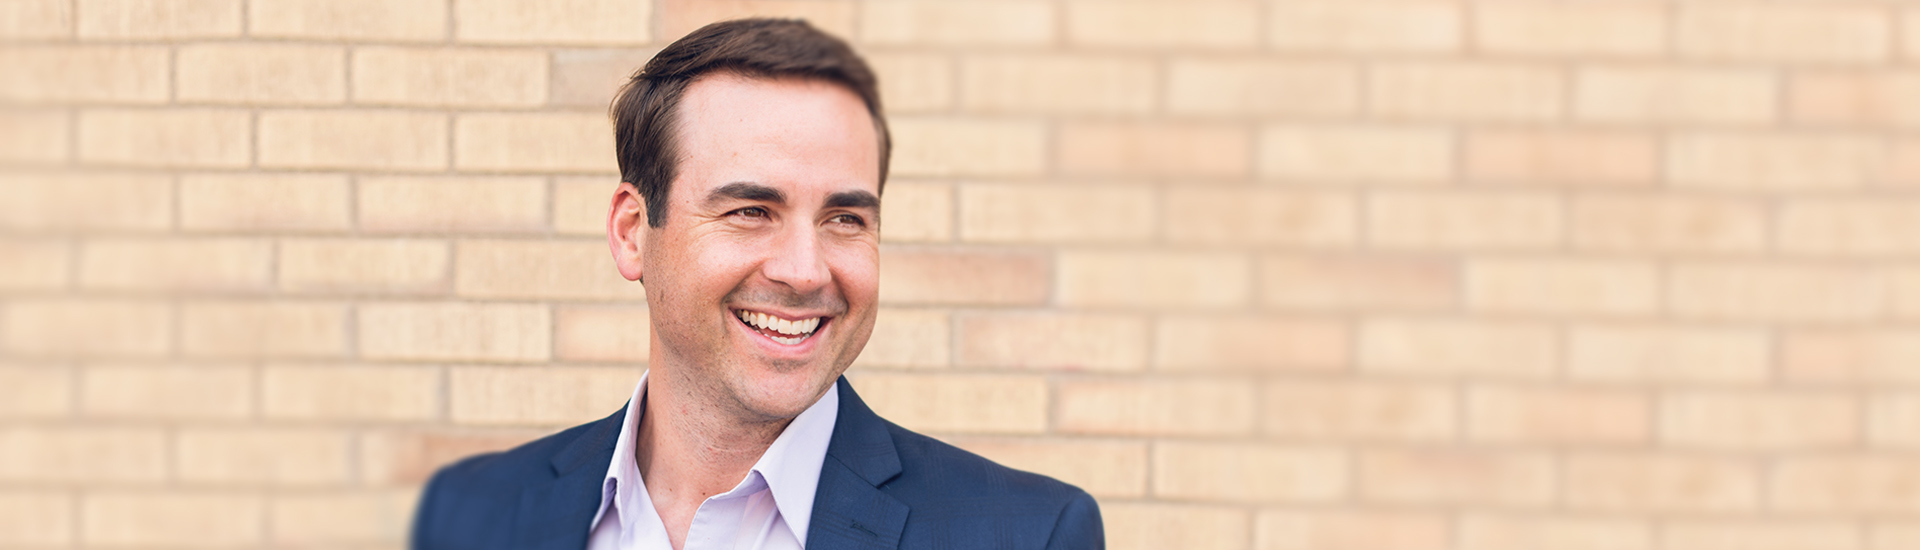 Vye President, Dan Soldner, Named Twin Cities Business Notable Executive